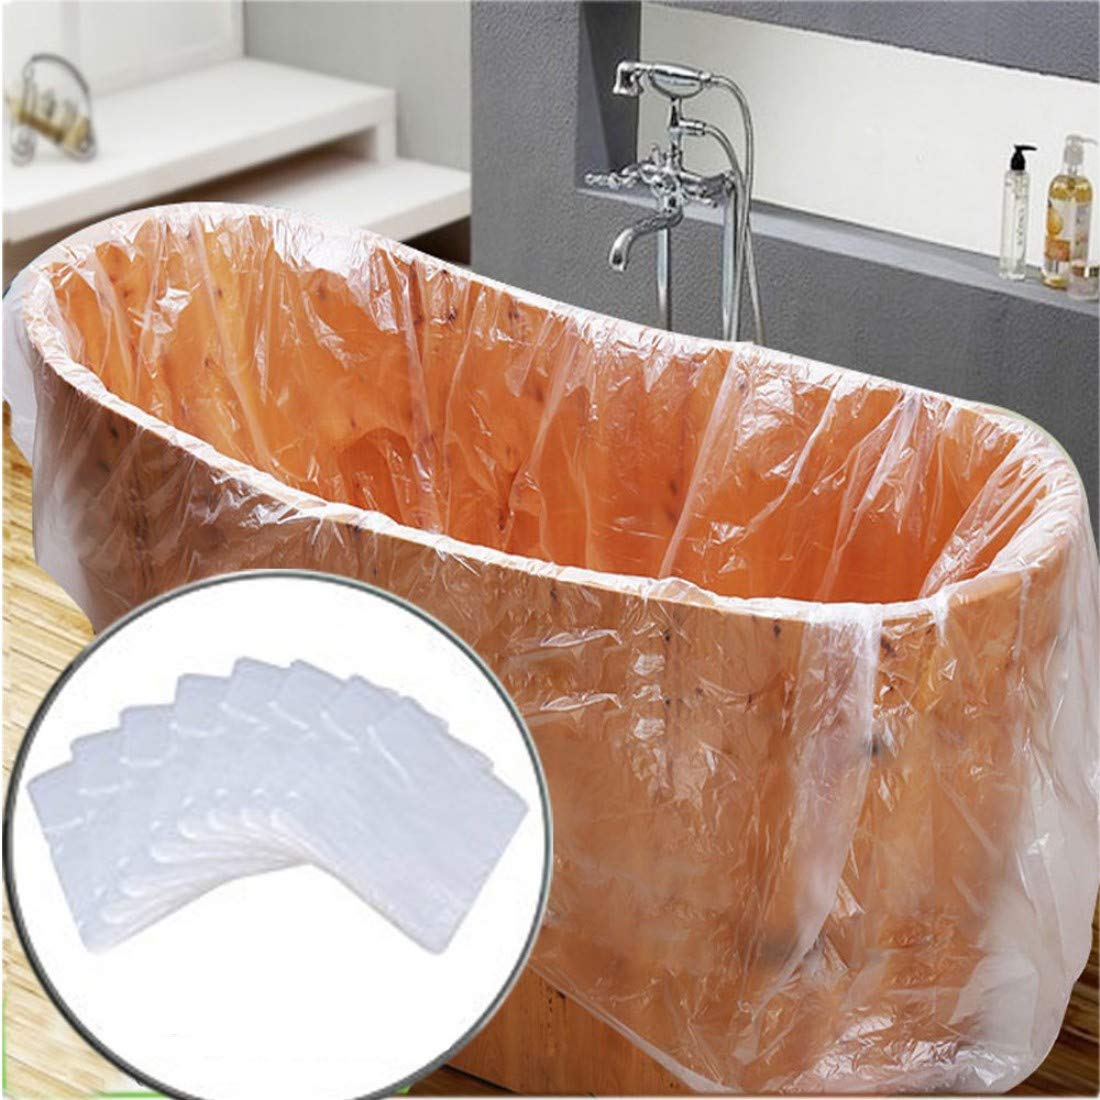 10 Pack Disposable Bathtub Cover Liner, Ultra Large Bathtub Liner Plastic Bag for Salon, Household and Hotel Bath Tubs (90x47 Inch)